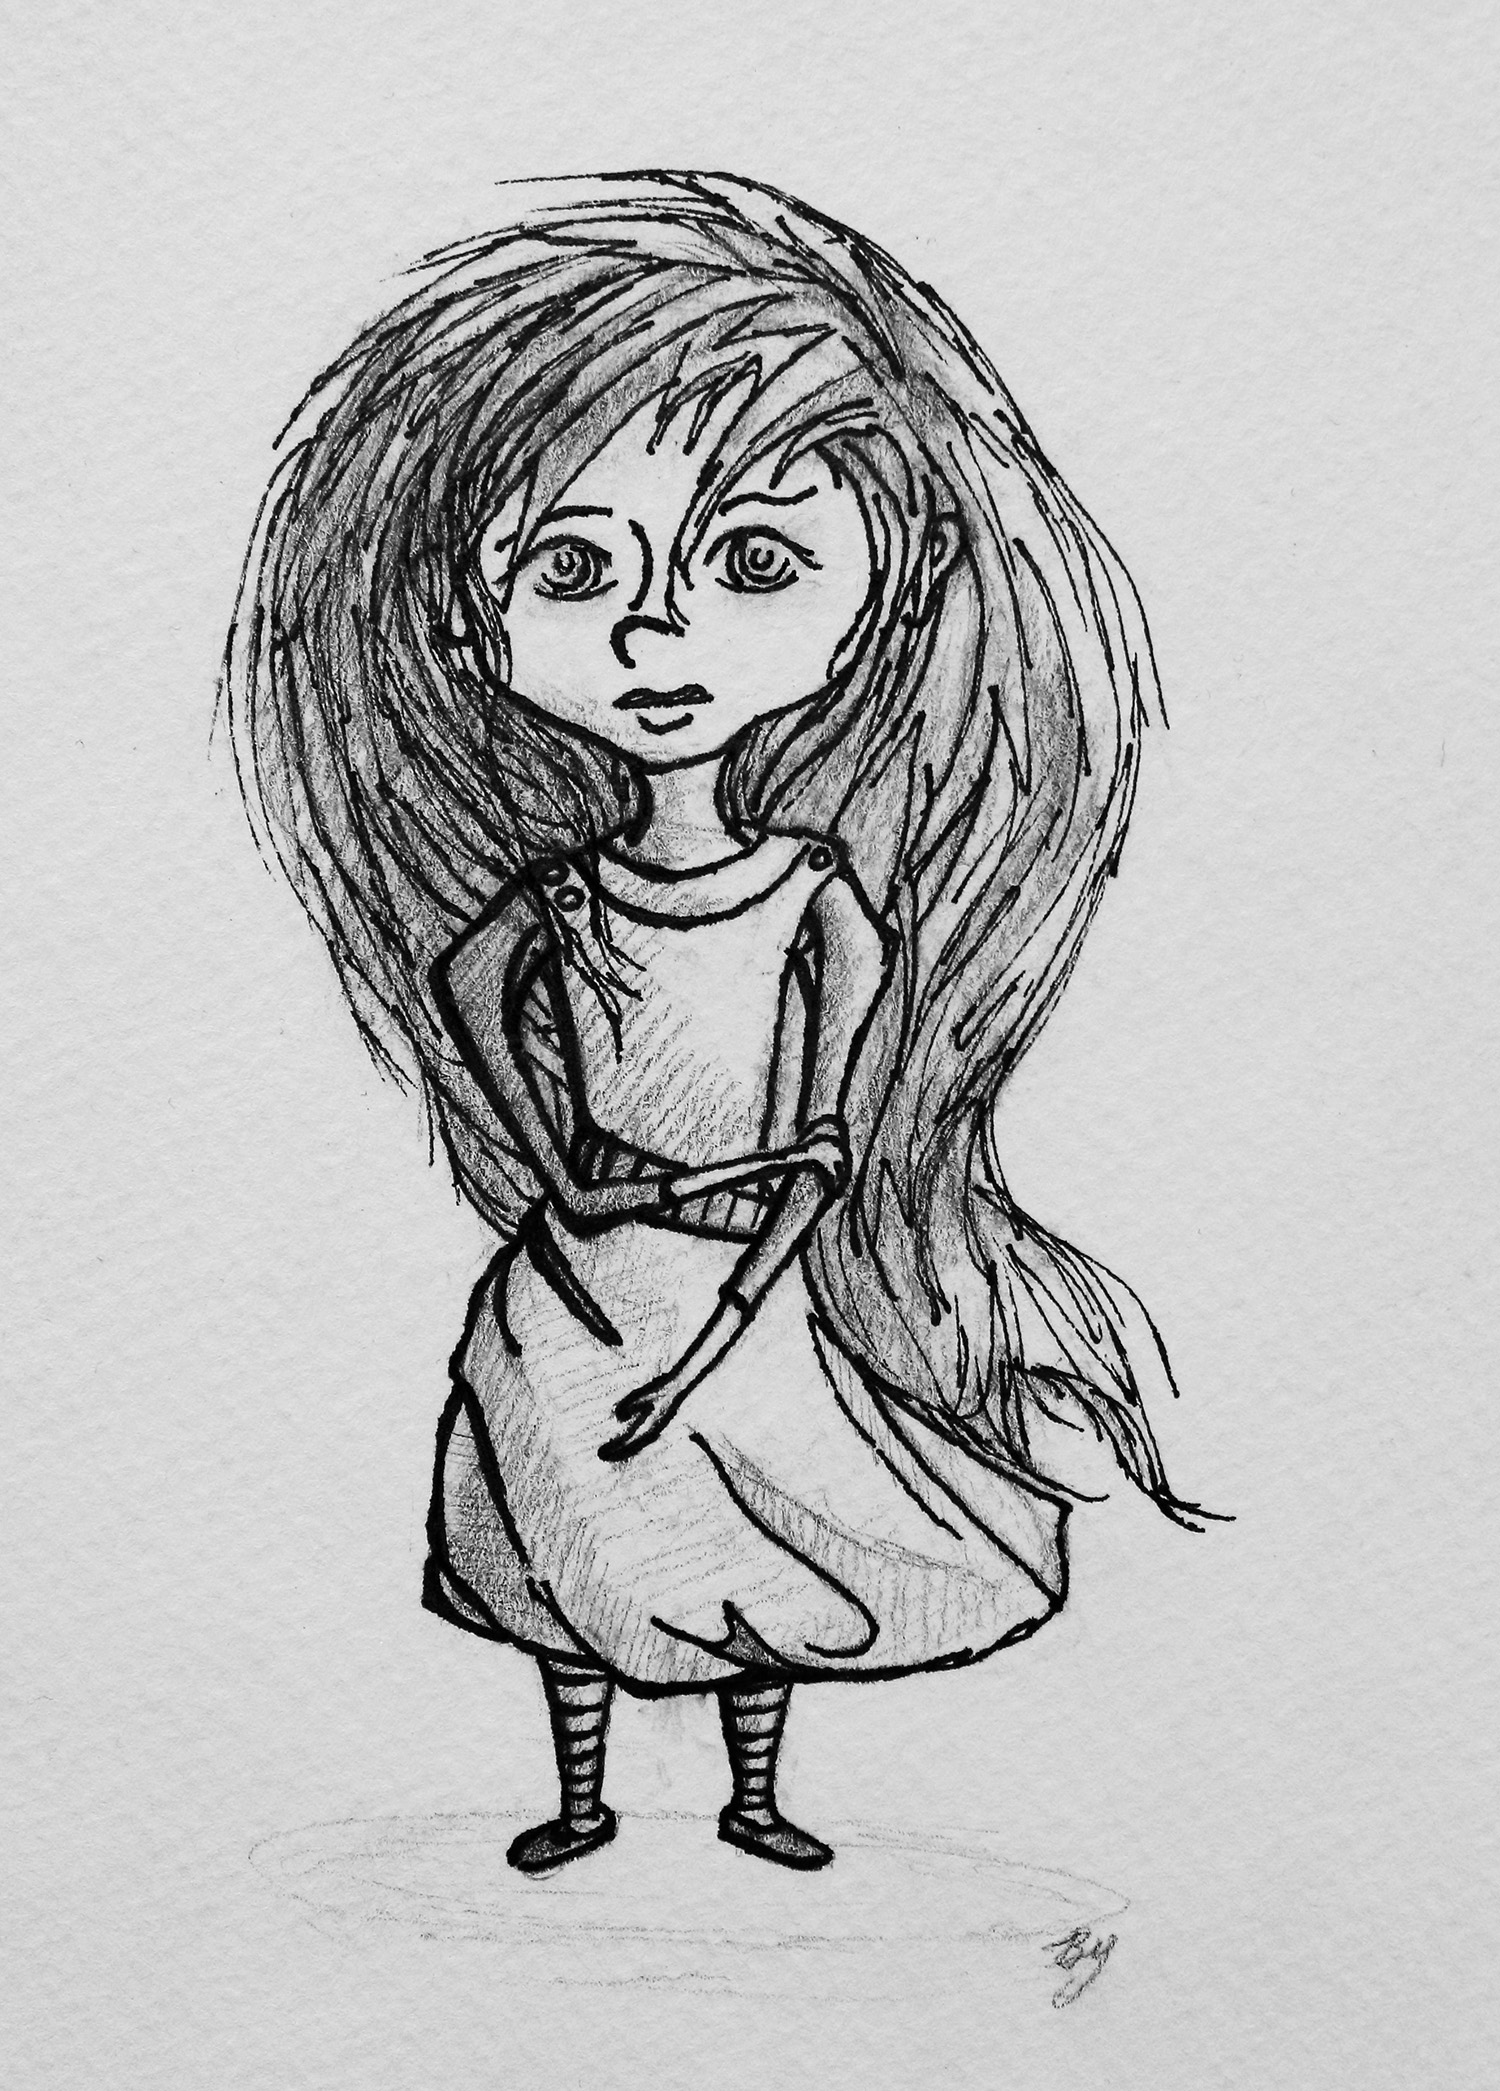 Concept Sketch of Young Girl